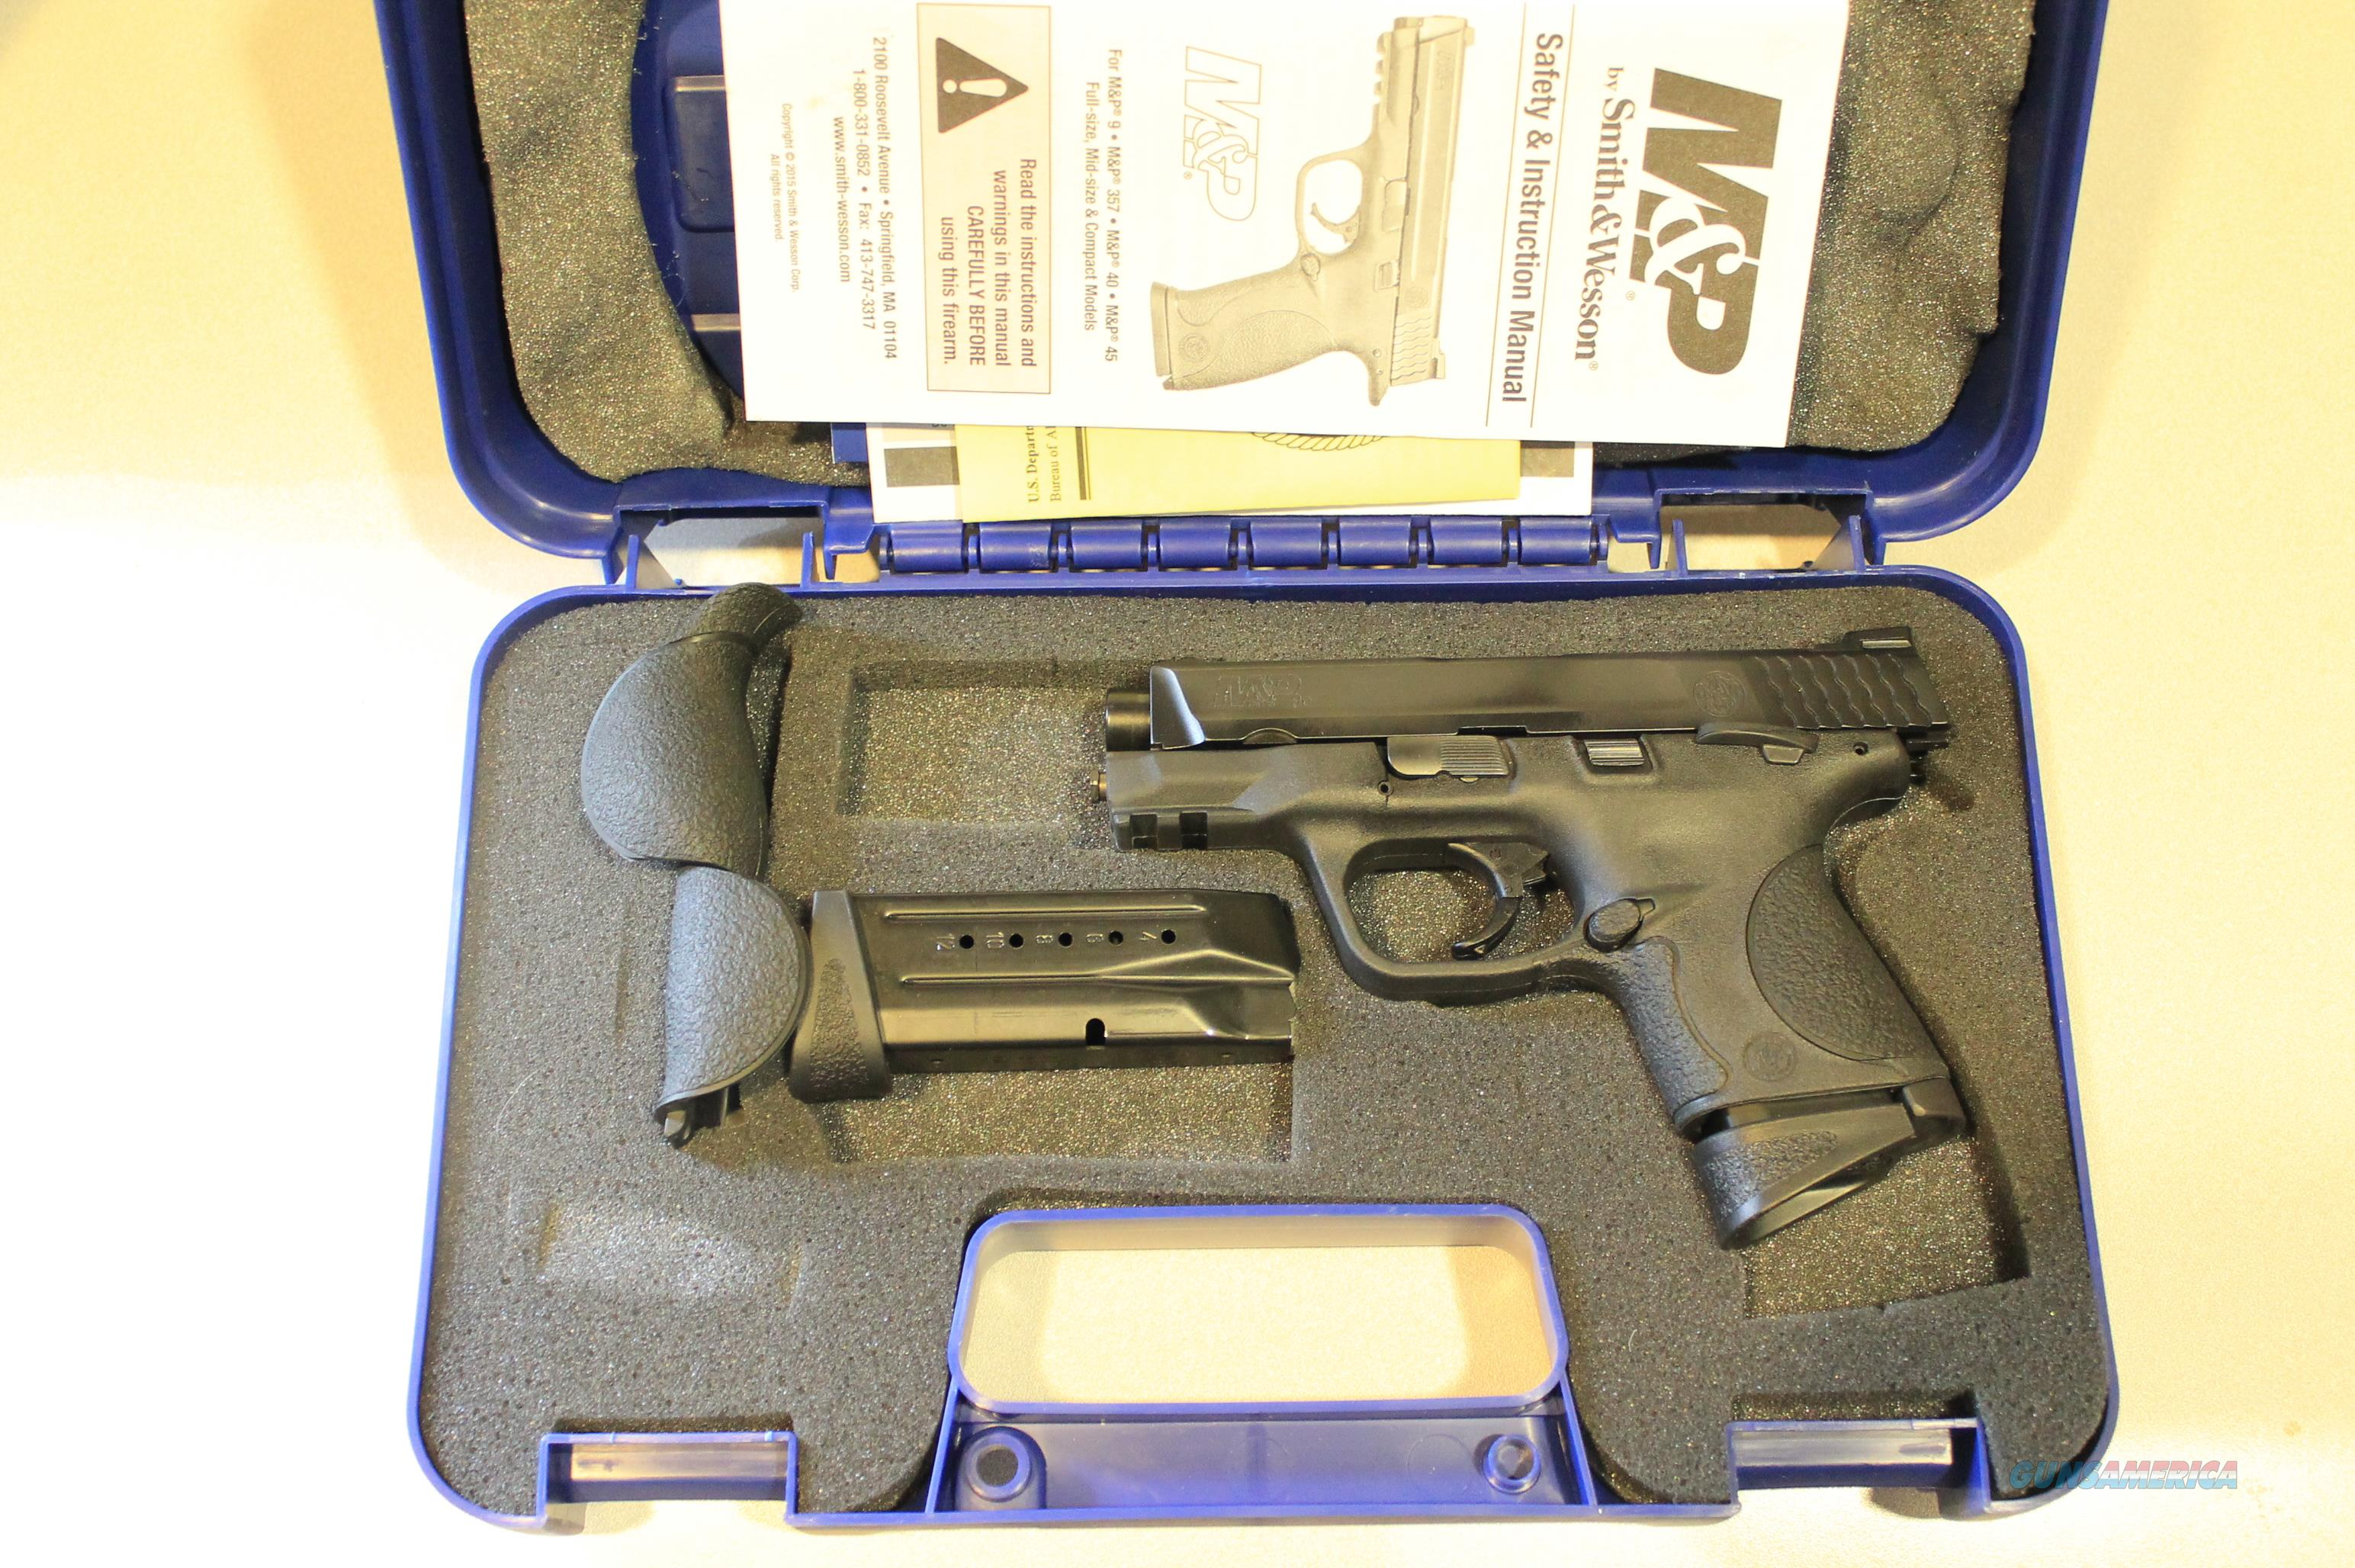 Smith & Wesson M&P 9c Thumb Safety 9mm - (2) 12rd Mags + Case Like-New!  Guns > Pistols > Smith & Wesson Pistols - Autos > Polymer Frame